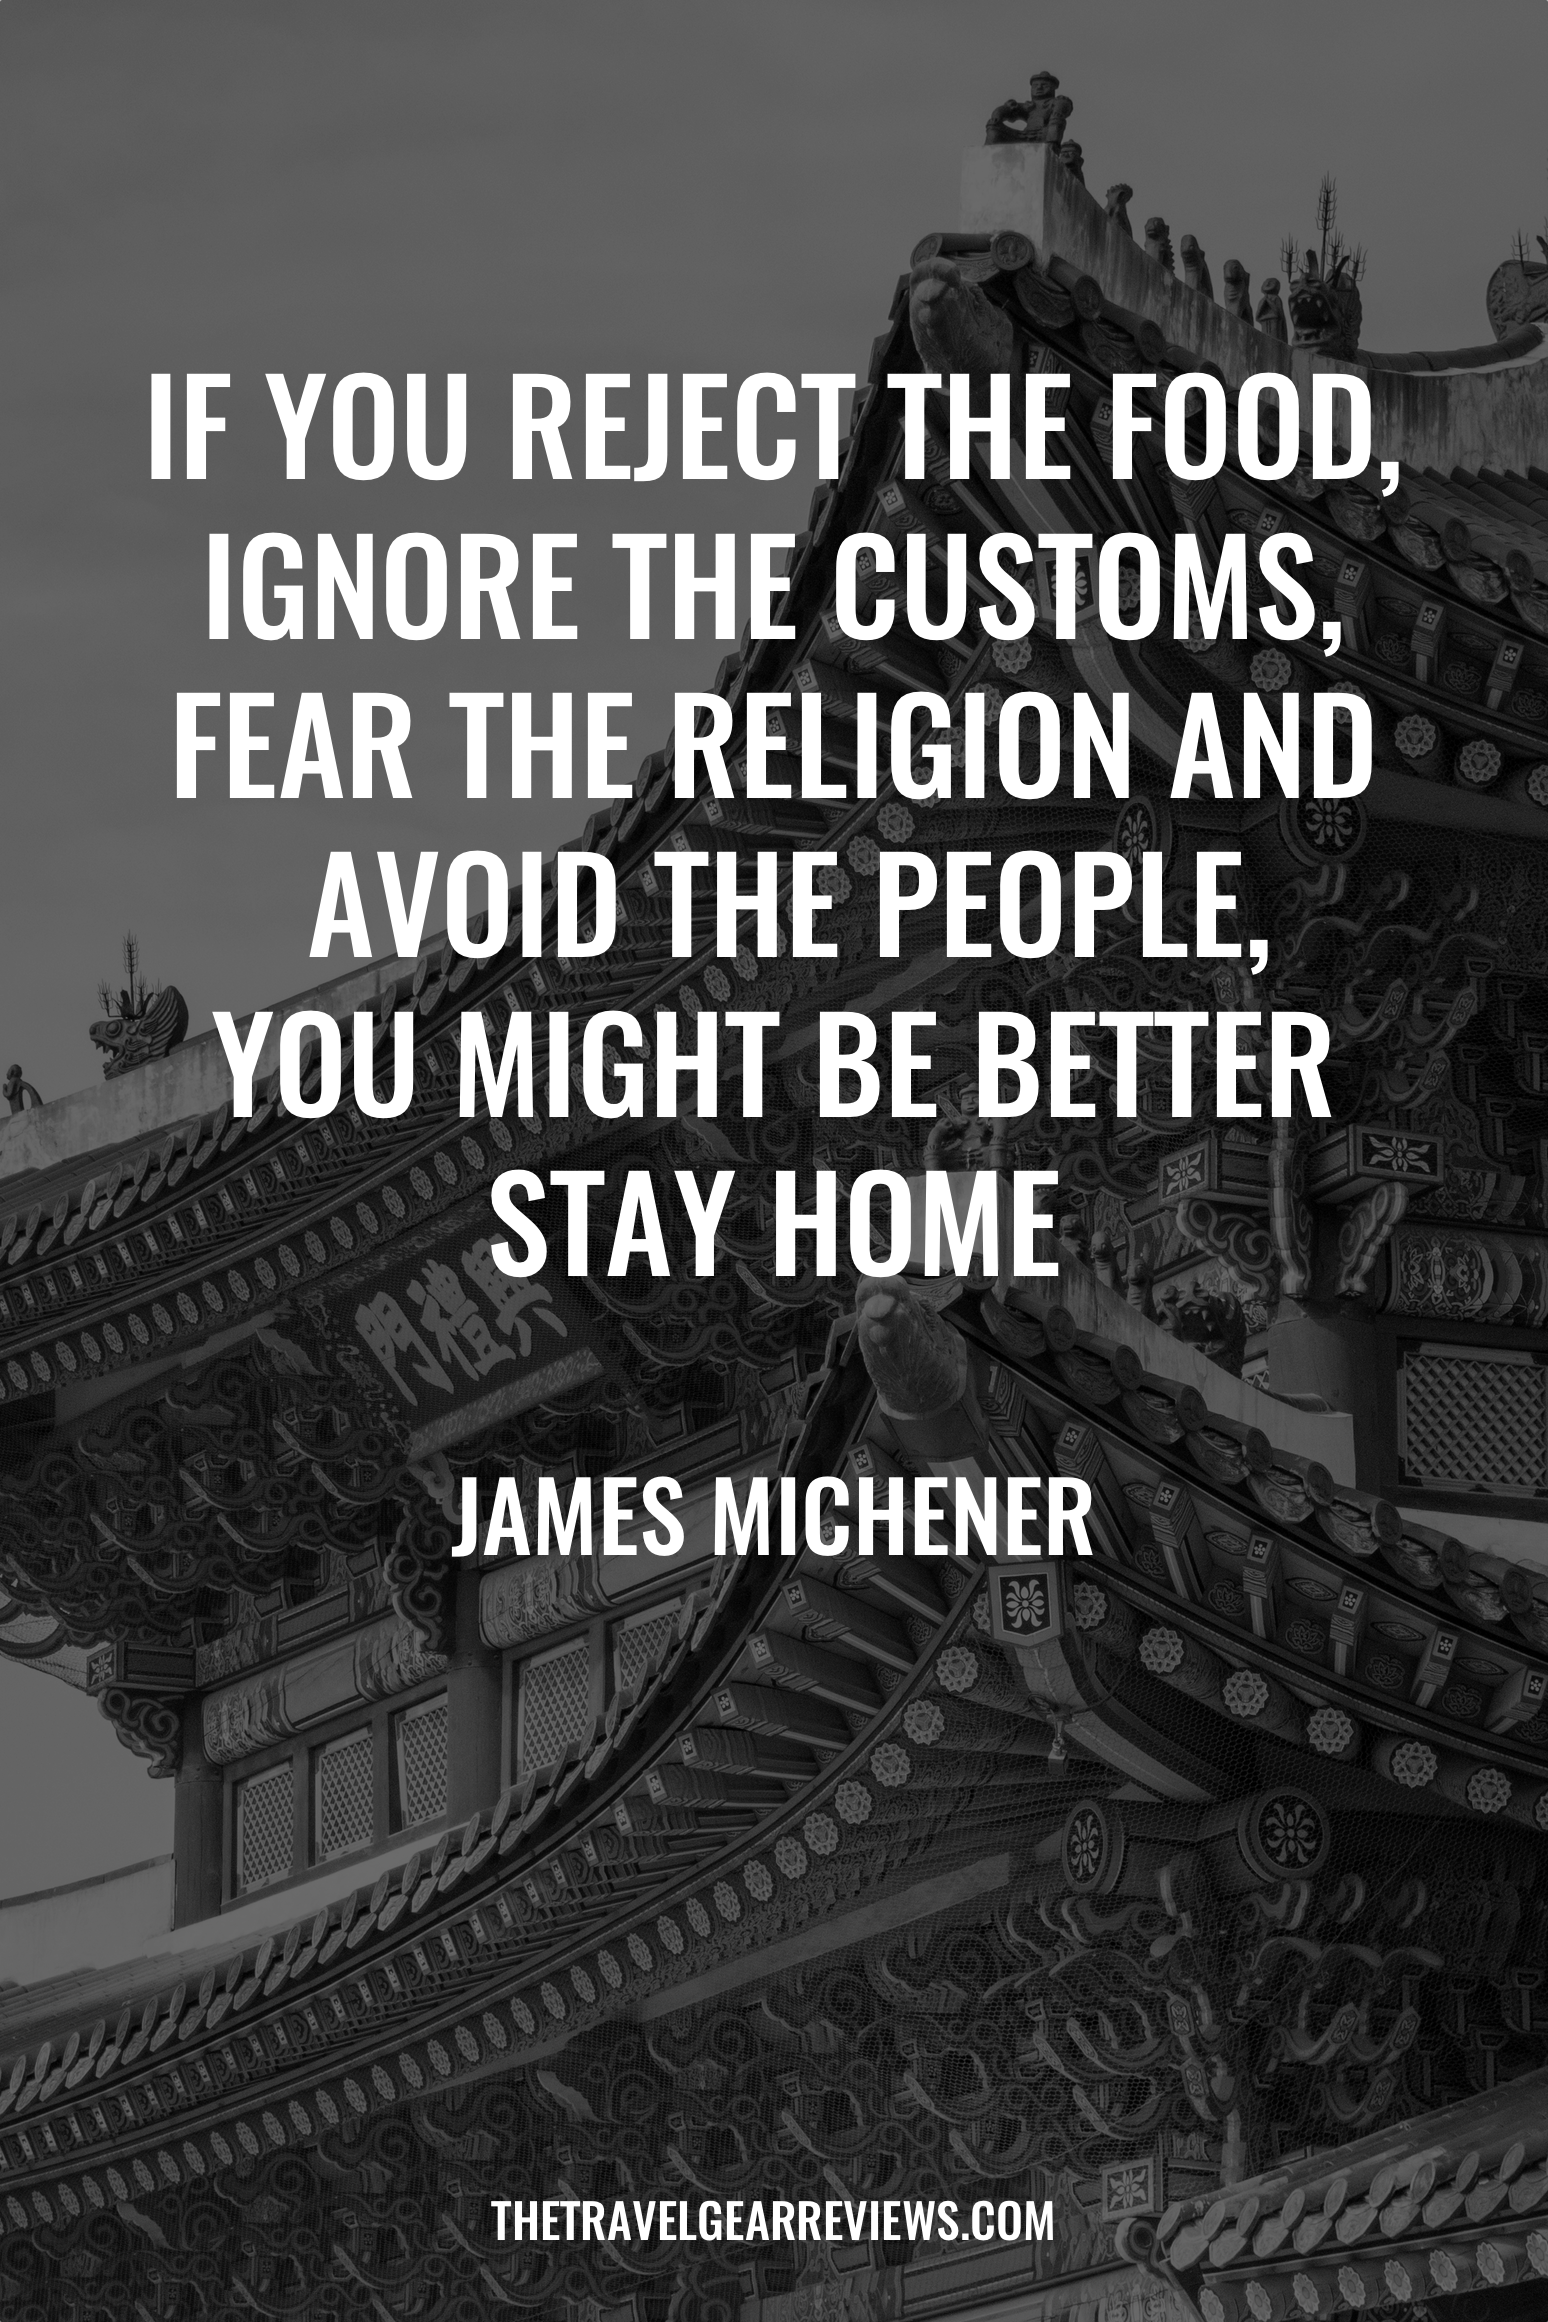 6. If you reject the food, ignore the customs, fear the religion and avoid the people, you might be better stay home - James Michener. 100 Best Travel Quotes